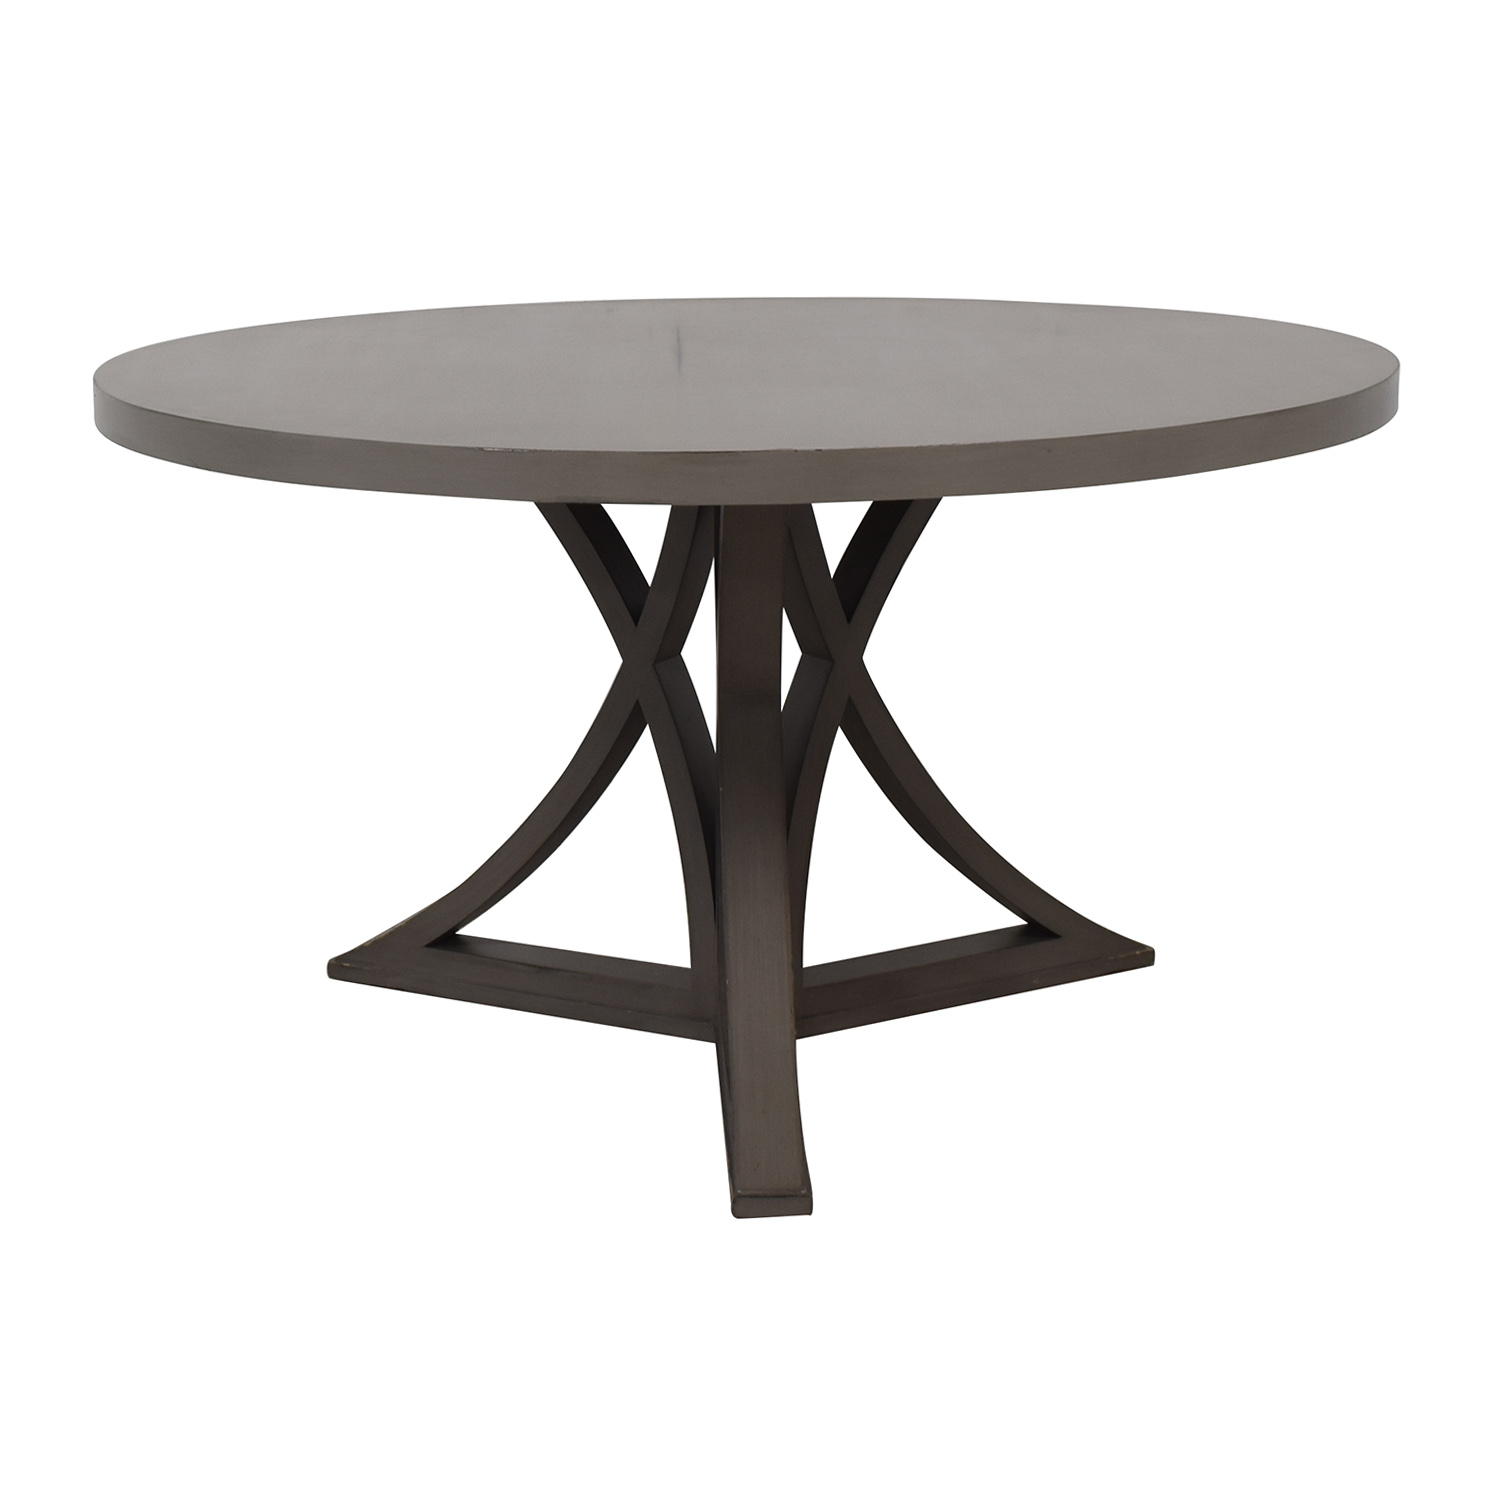 Redford House Redford House Floyd Dining Table gray